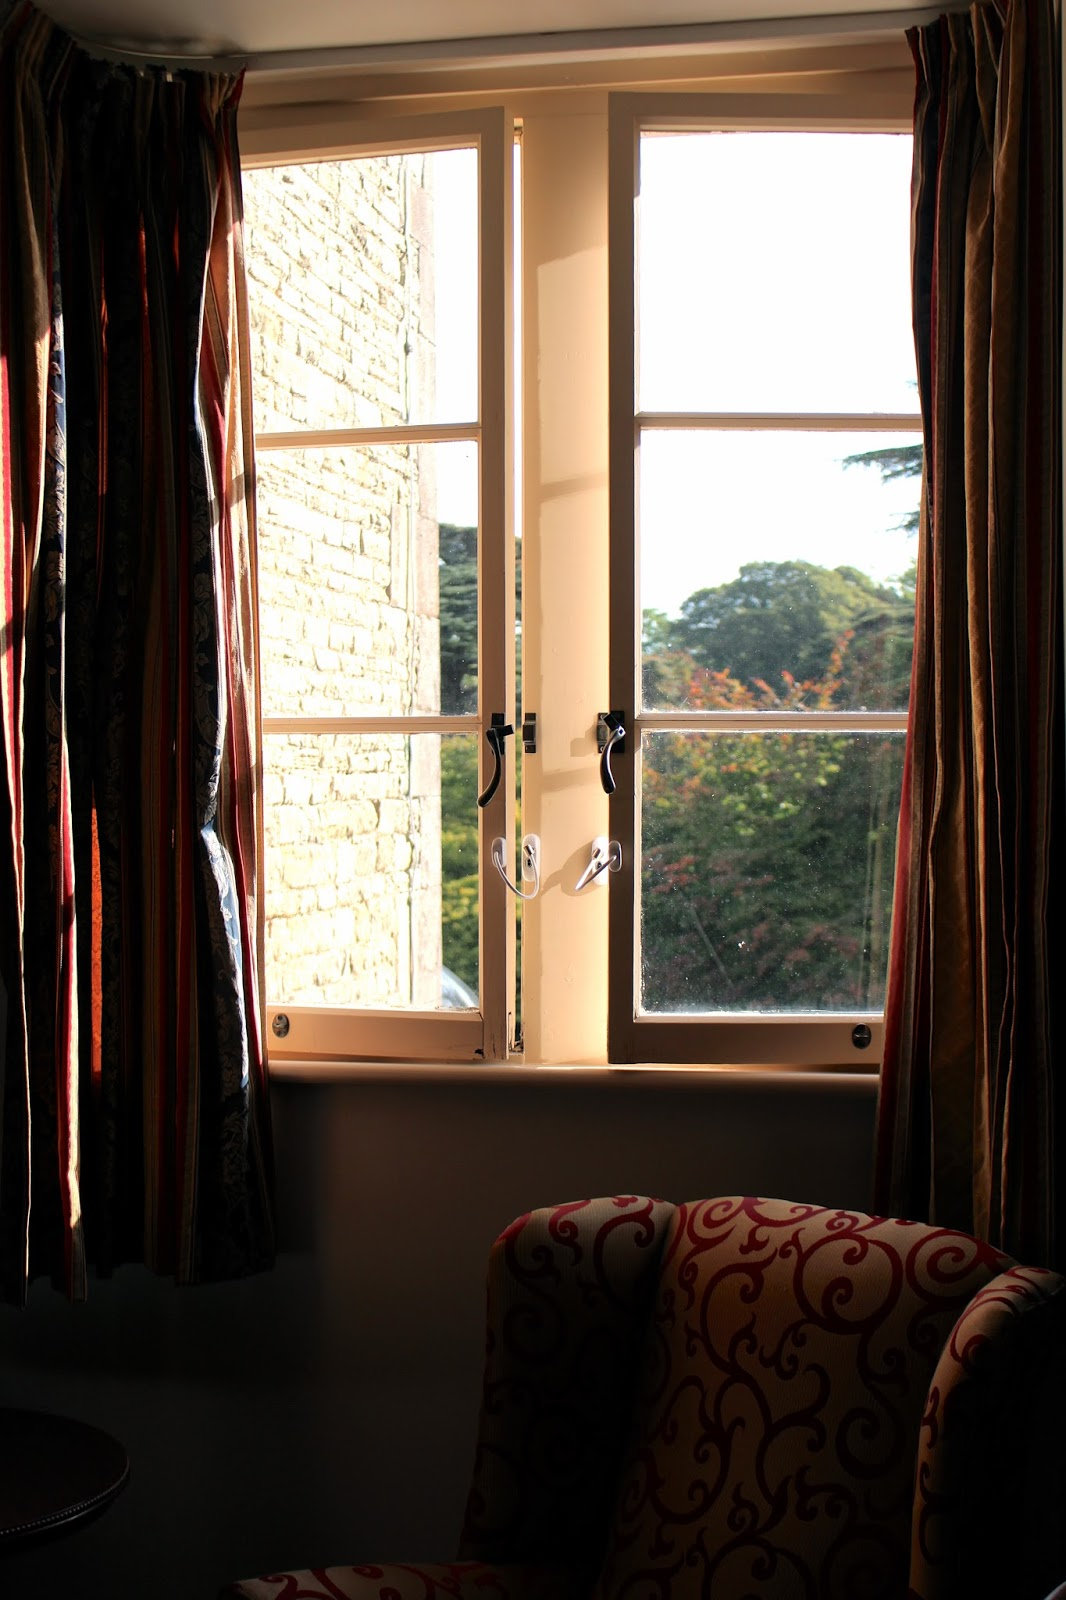 Hotel room morning sunshine at Tortworth Court